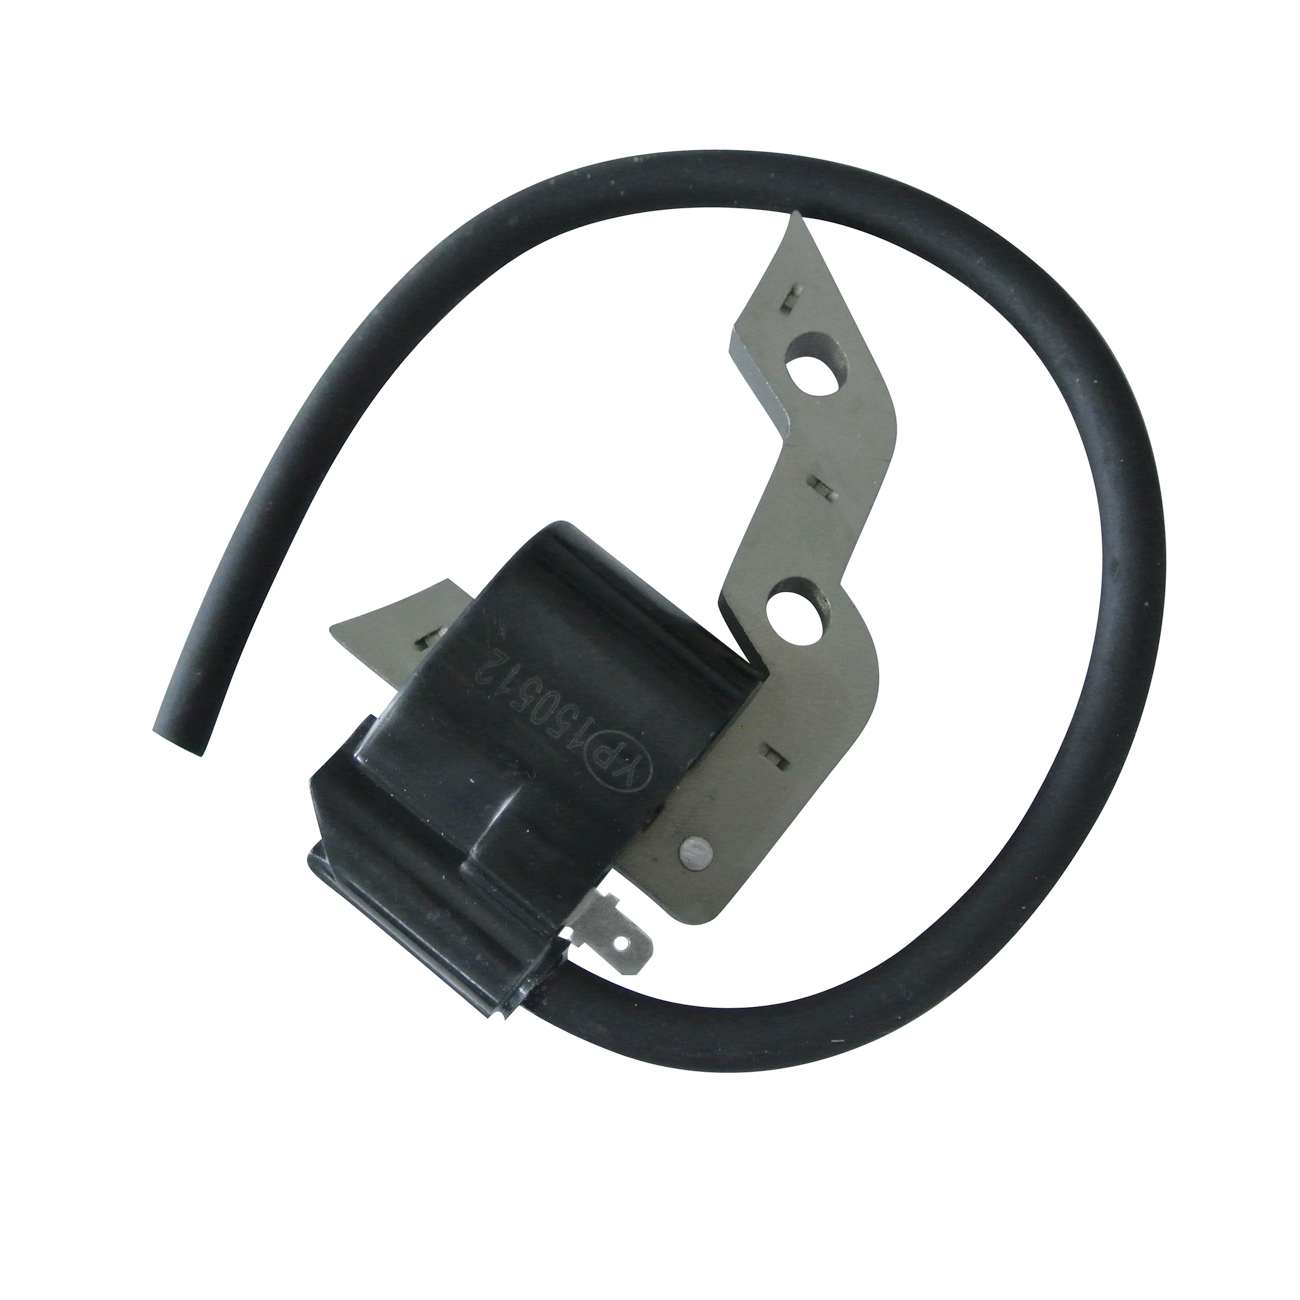 New Ignition Coil Fits Briggs & Stratton 2.4-6 HP Engine Motors ...